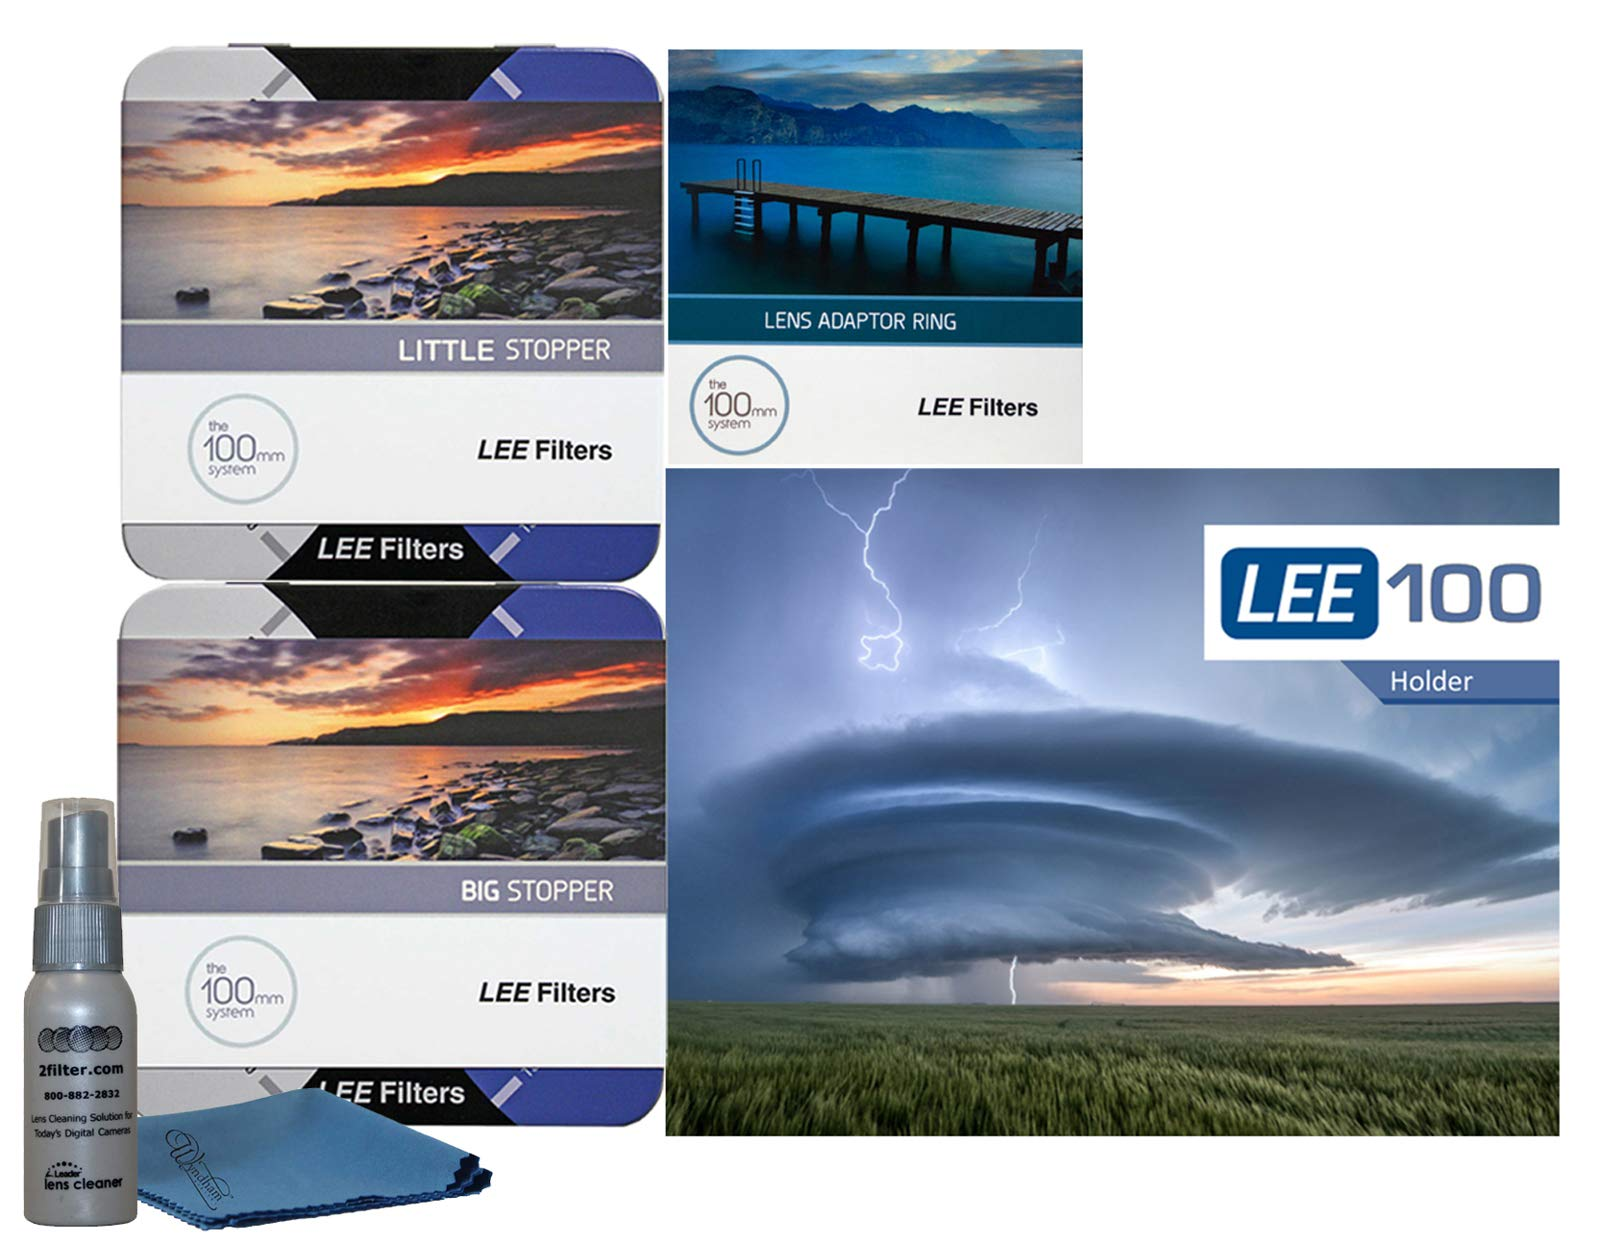 LEE Filters LEE100 82mm Premium Long Exposure Kit - Lee Filters LEE100 Filter Holder, LEE 100mm Big and Little Stopper, 82mm Wide Angle Adapter Ring by Lee Filters